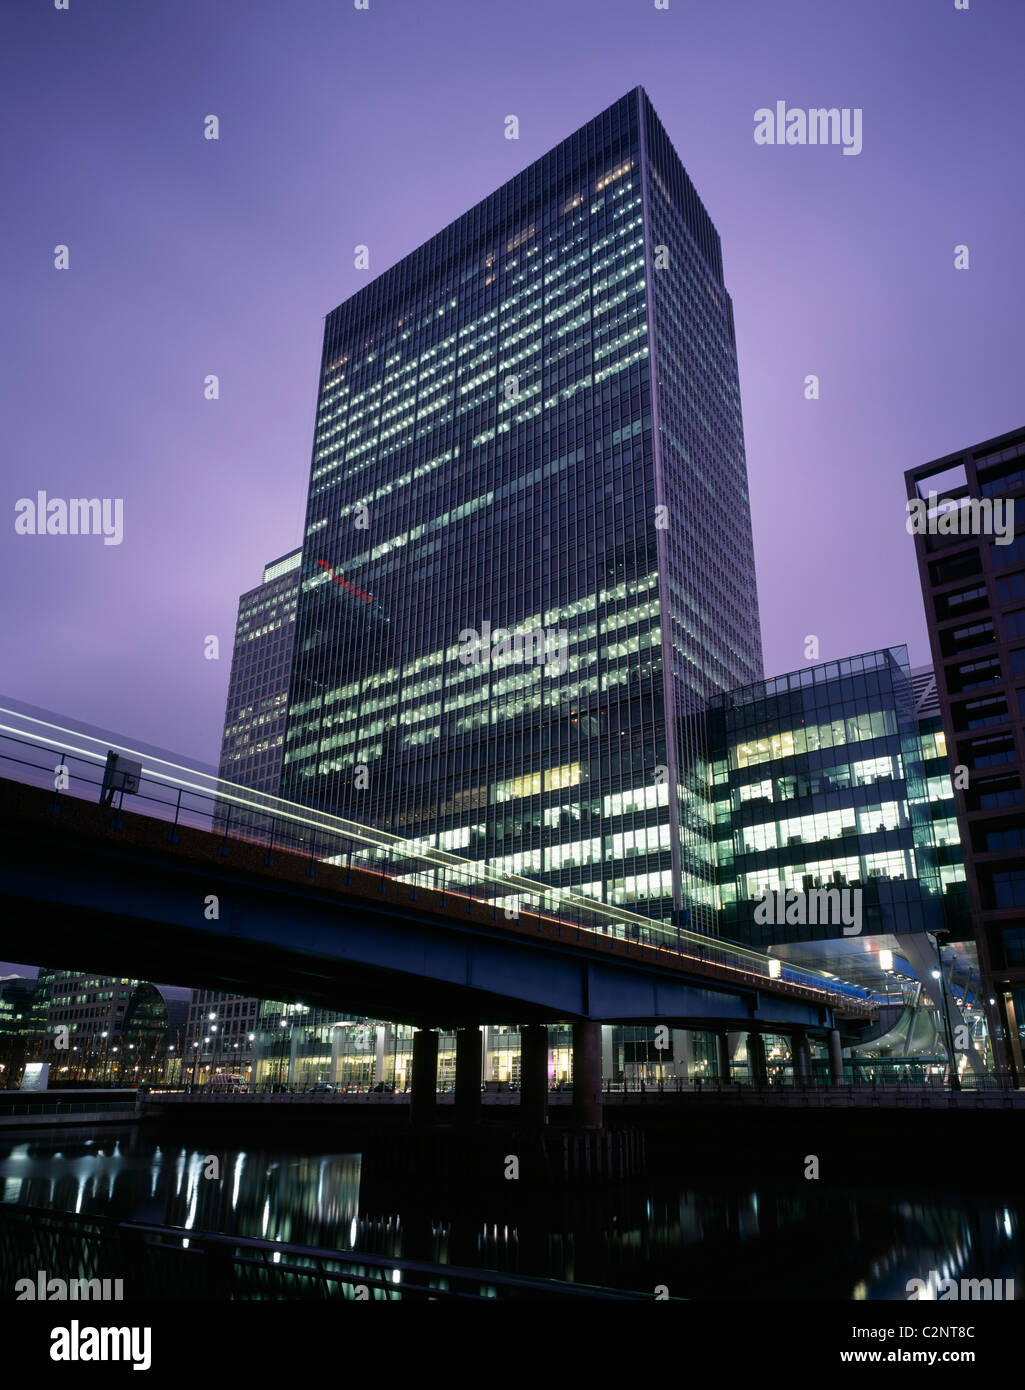 Office, Canary Wharf London. Dusk oblique view. - Stock Image